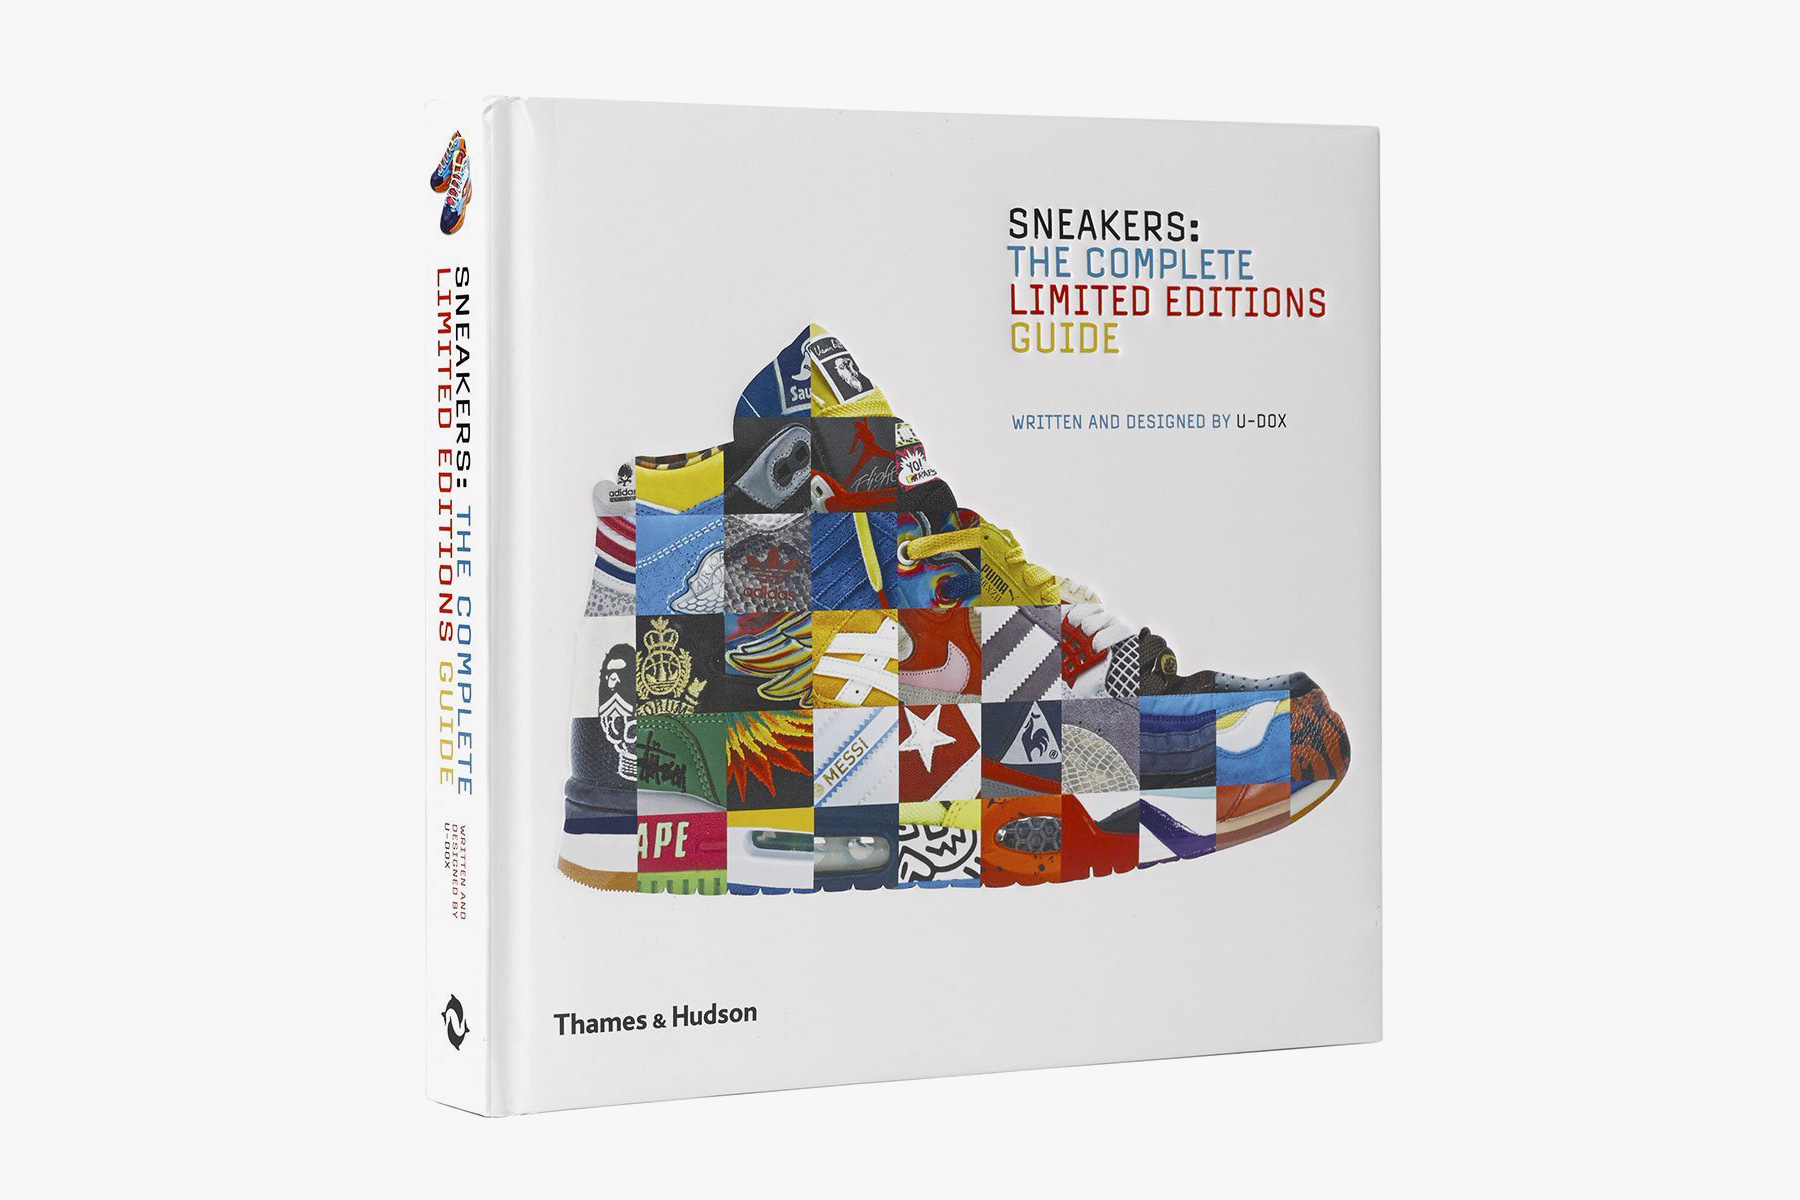 sneakers-the-complete-limited-editions-guide-001